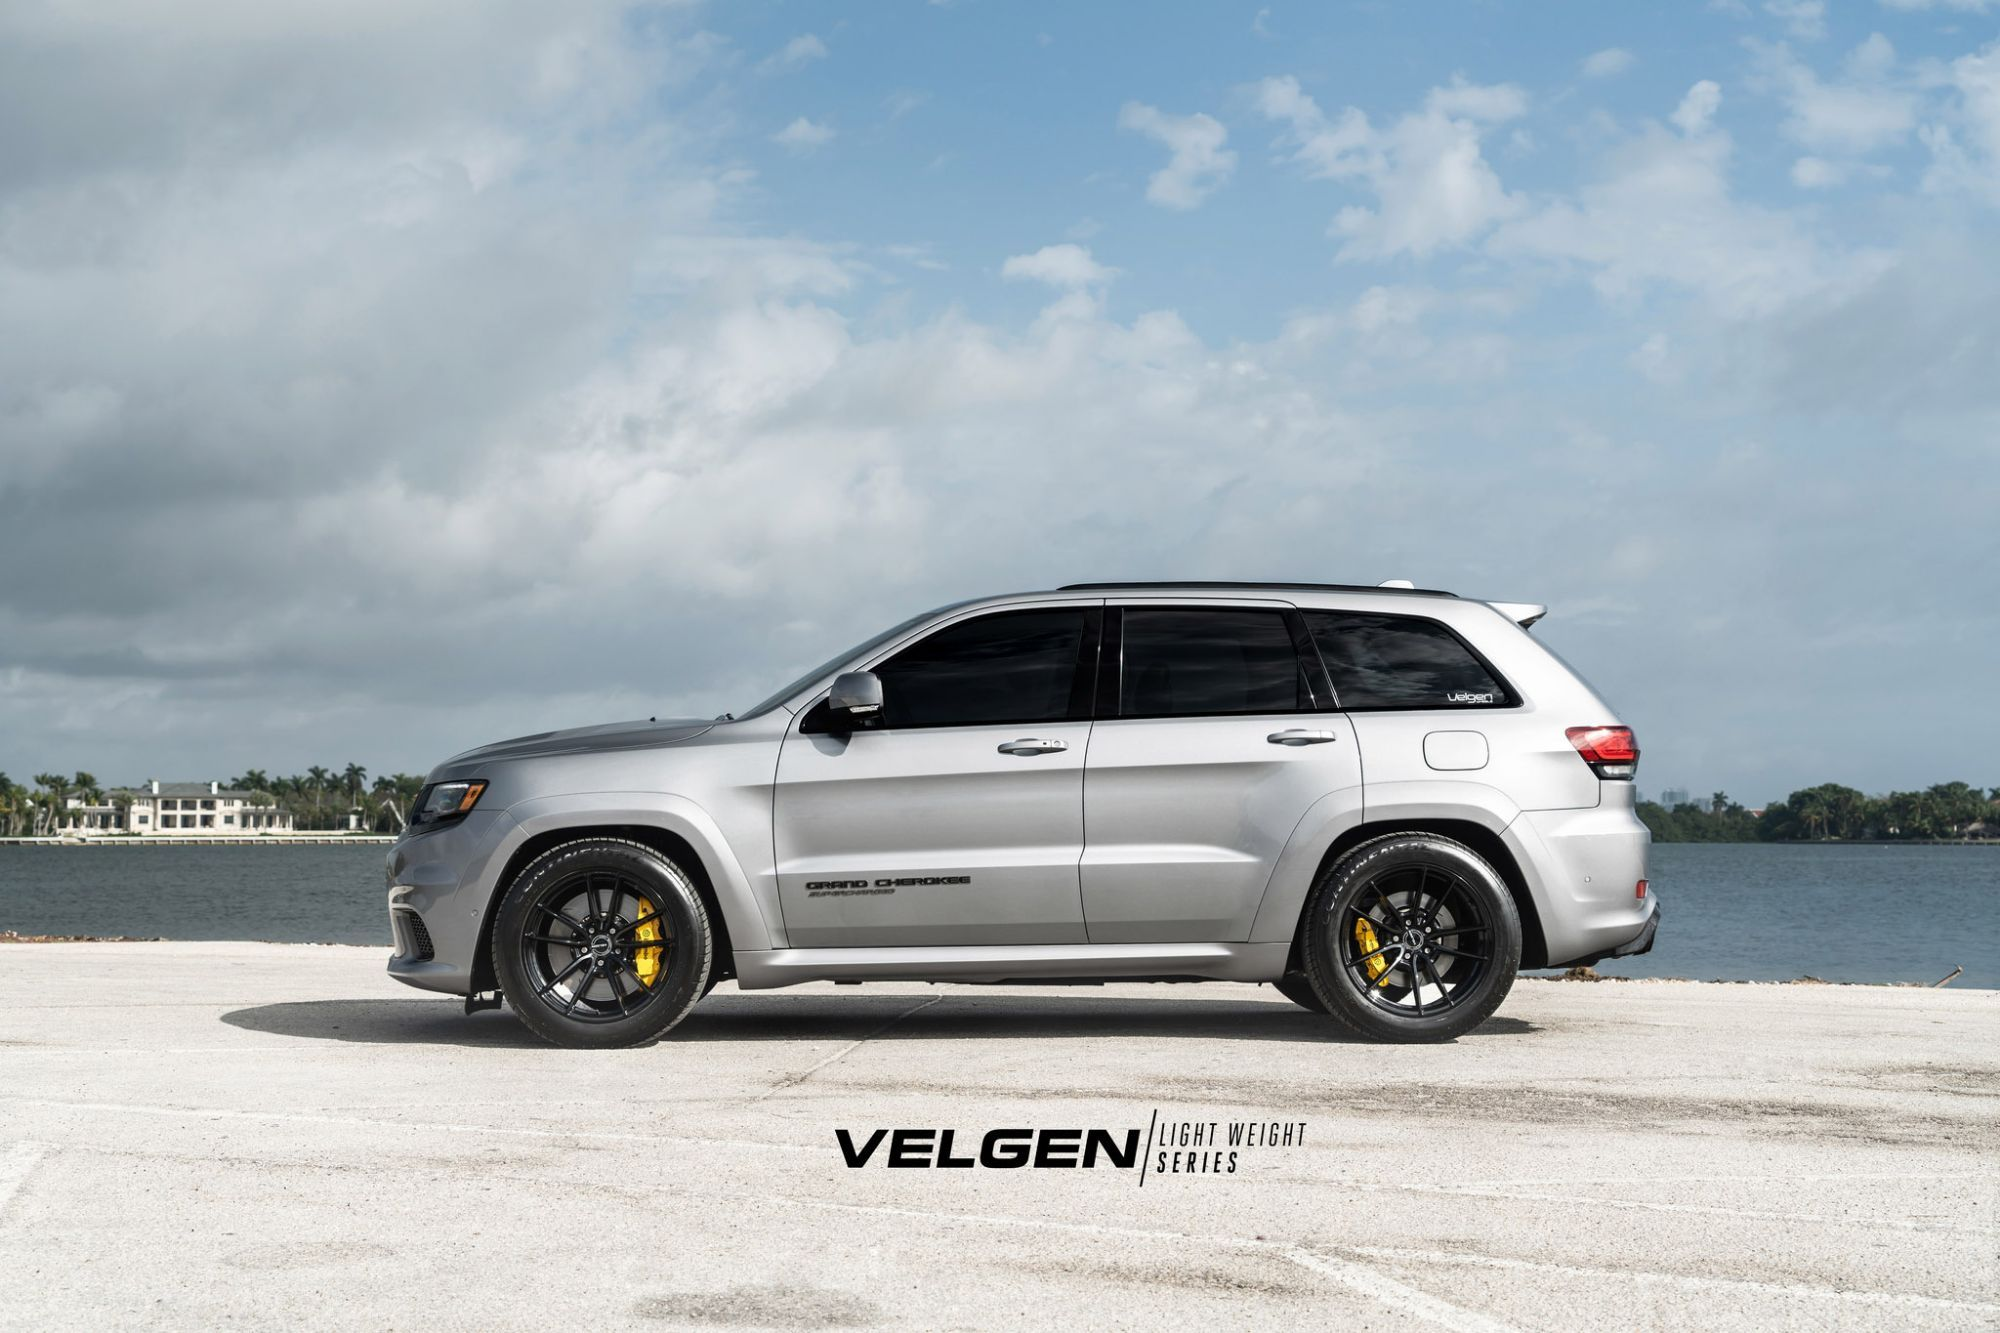 Jeep Grand Cherokee Trackhawk Grey Velgen Vf5 Aftermarket Wheels Wheel Frontjeep Grand Cherokee Trac Jeep Grand Cherokee Jeep Grand Cherokee Srt Jeep Grand